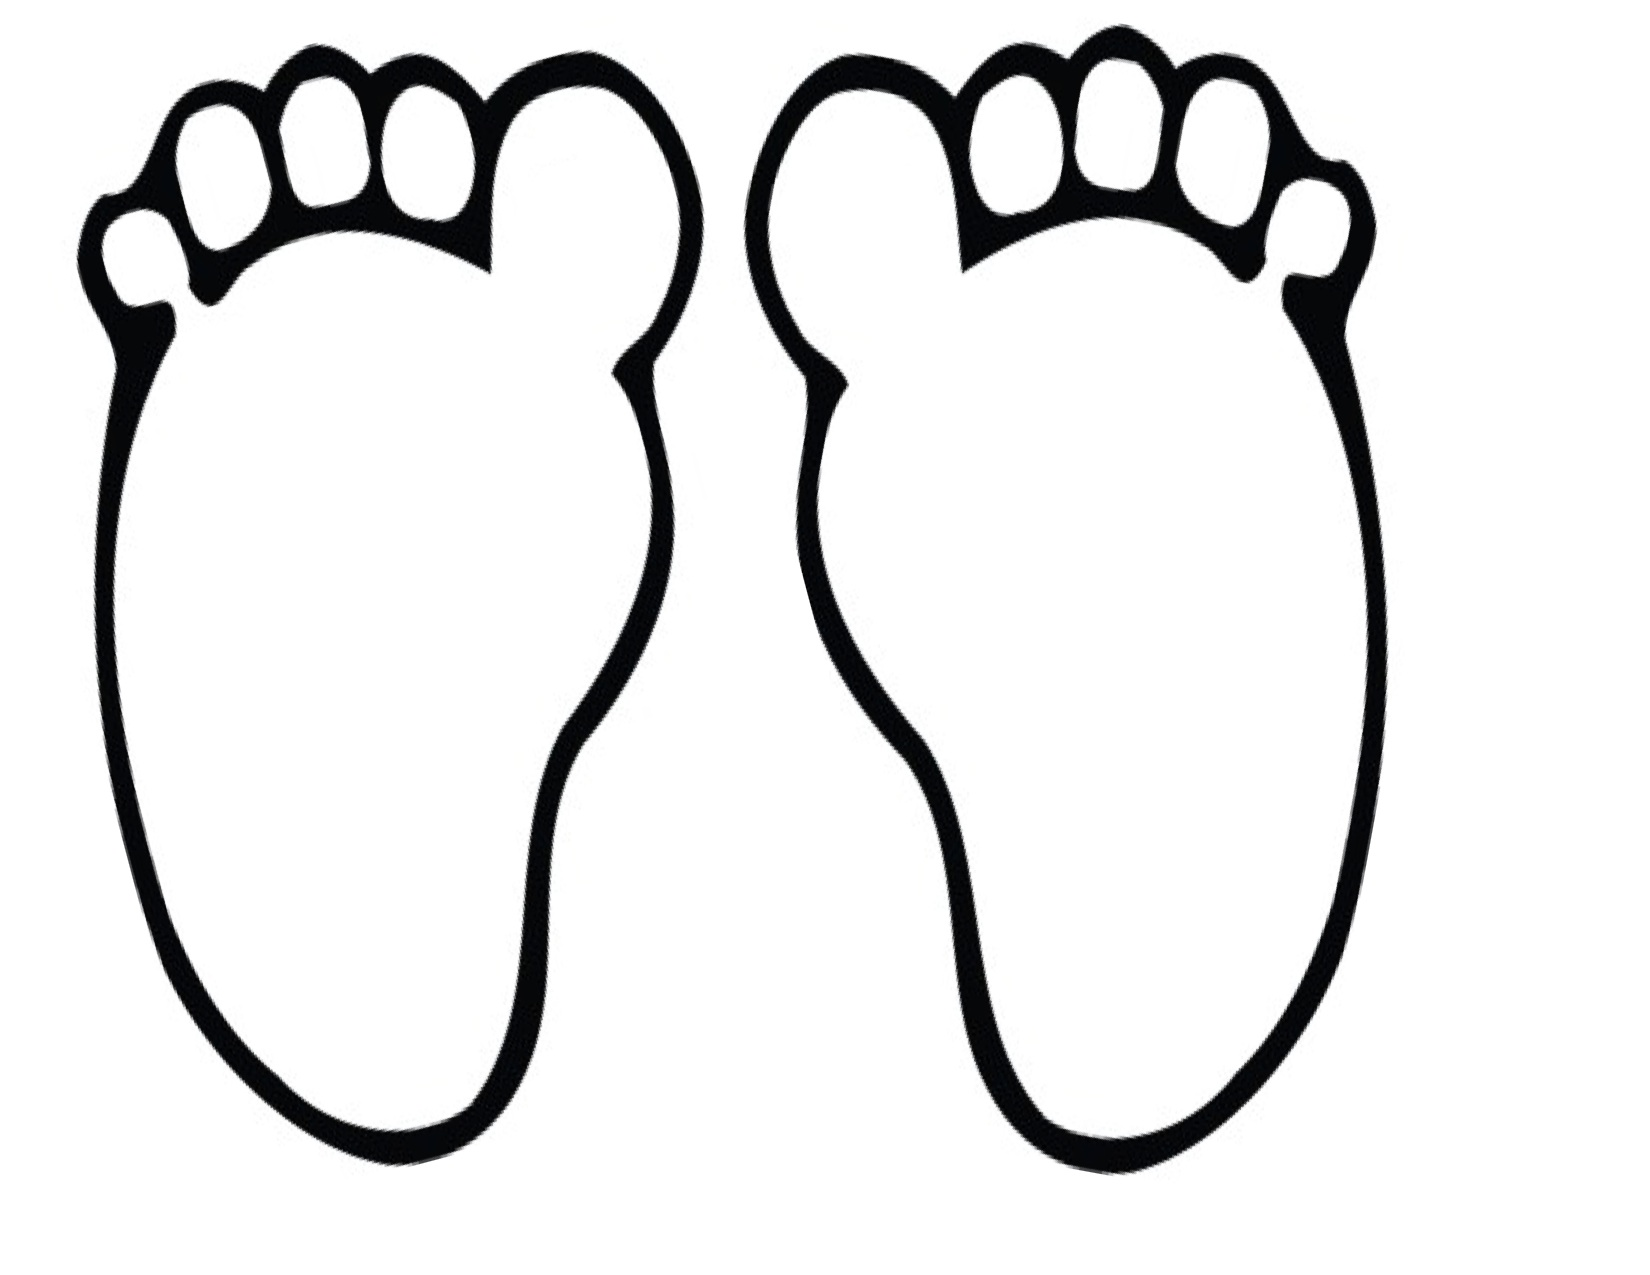 Feet clipart monochrome Feet Foot Clipart collection Clipart